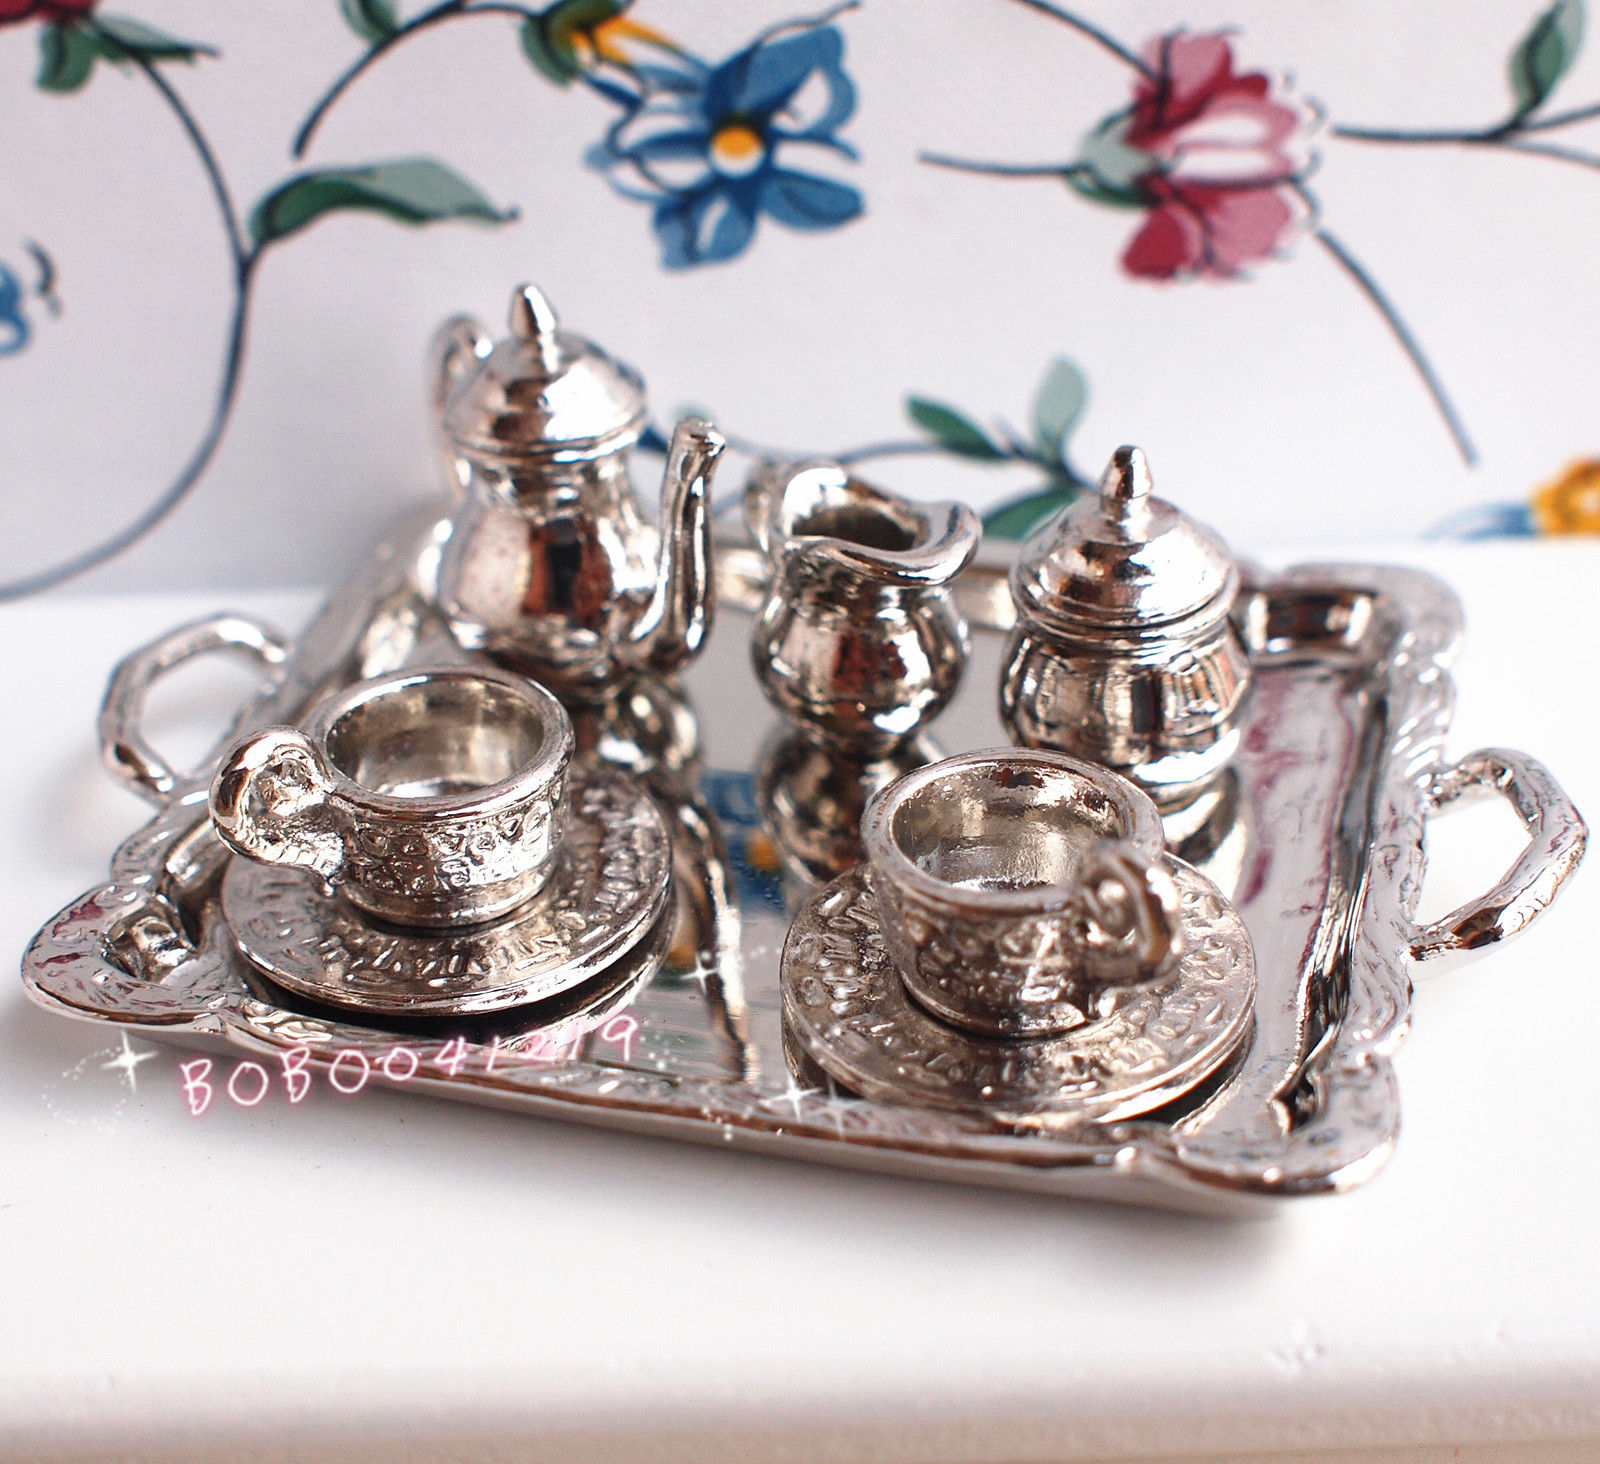 Small Crop Of Silver Tea Set